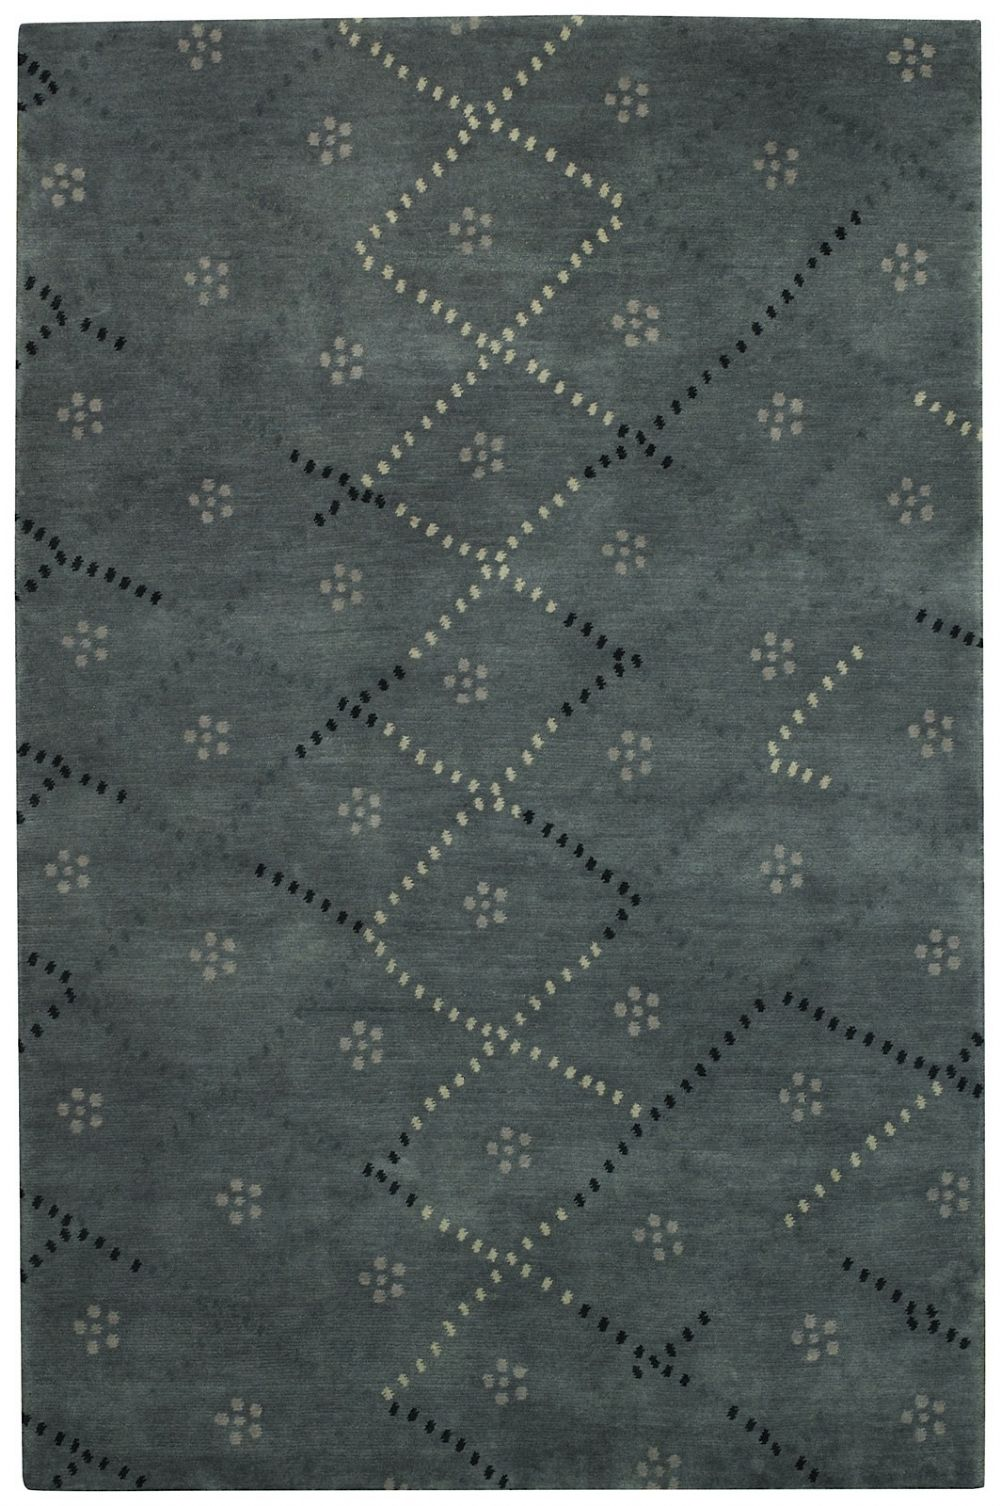 capel picturesque-fleur contemporary area rug collection